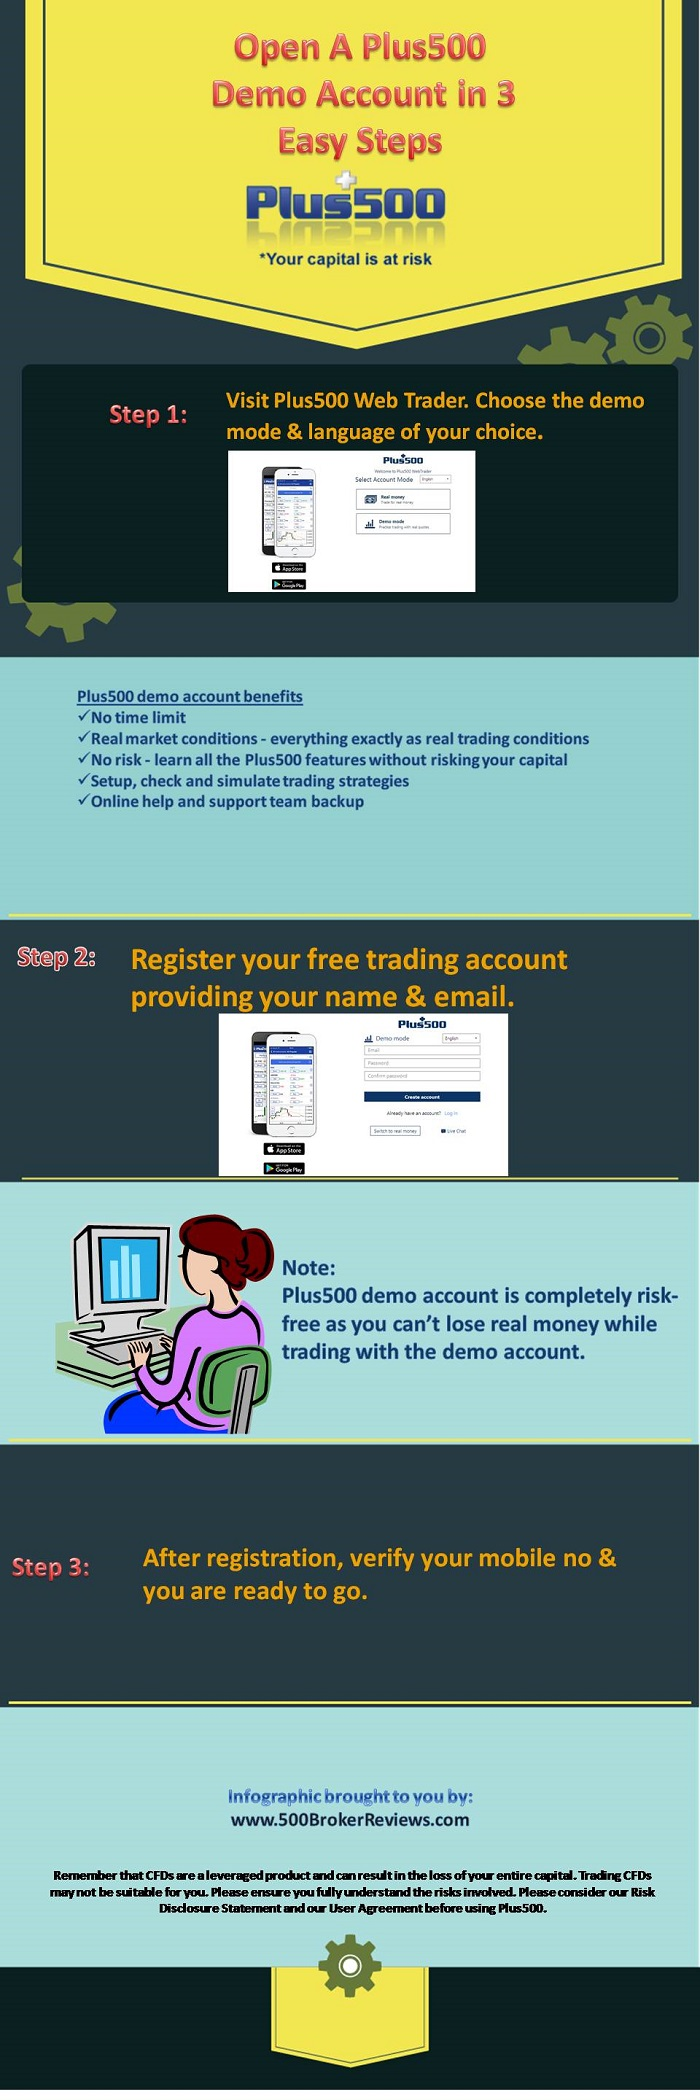 Open a Free Plus500 Demo Account in Three Easy Steps